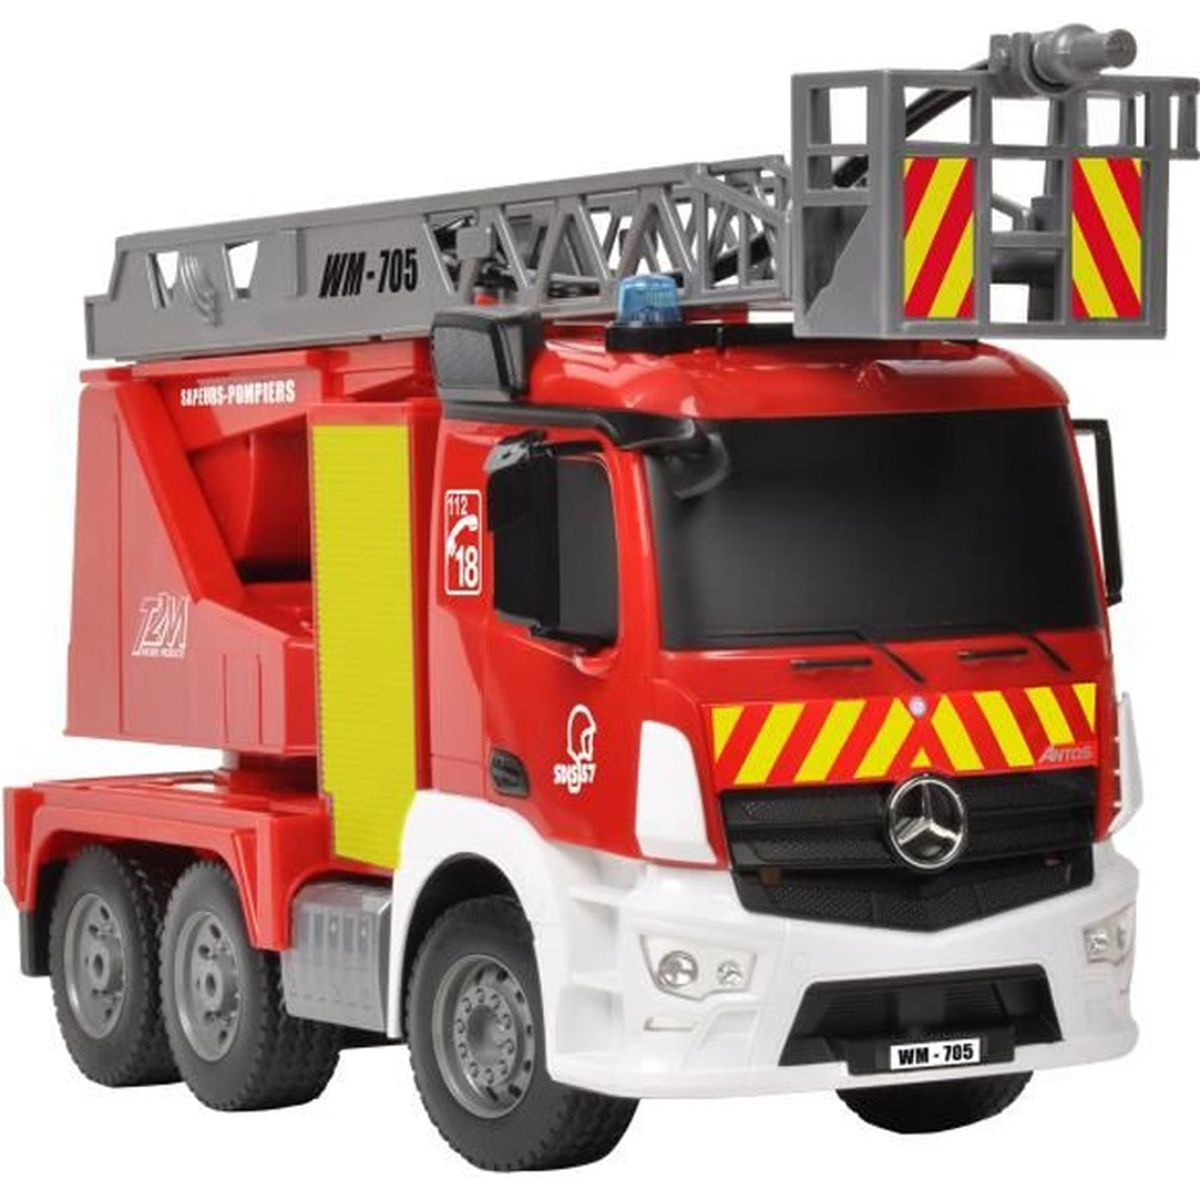 camion de pompiers rc t2m 1 20 achat vente camion enfant cdiscount. Black Bedroom Furniture Sets. Home Design Ideas